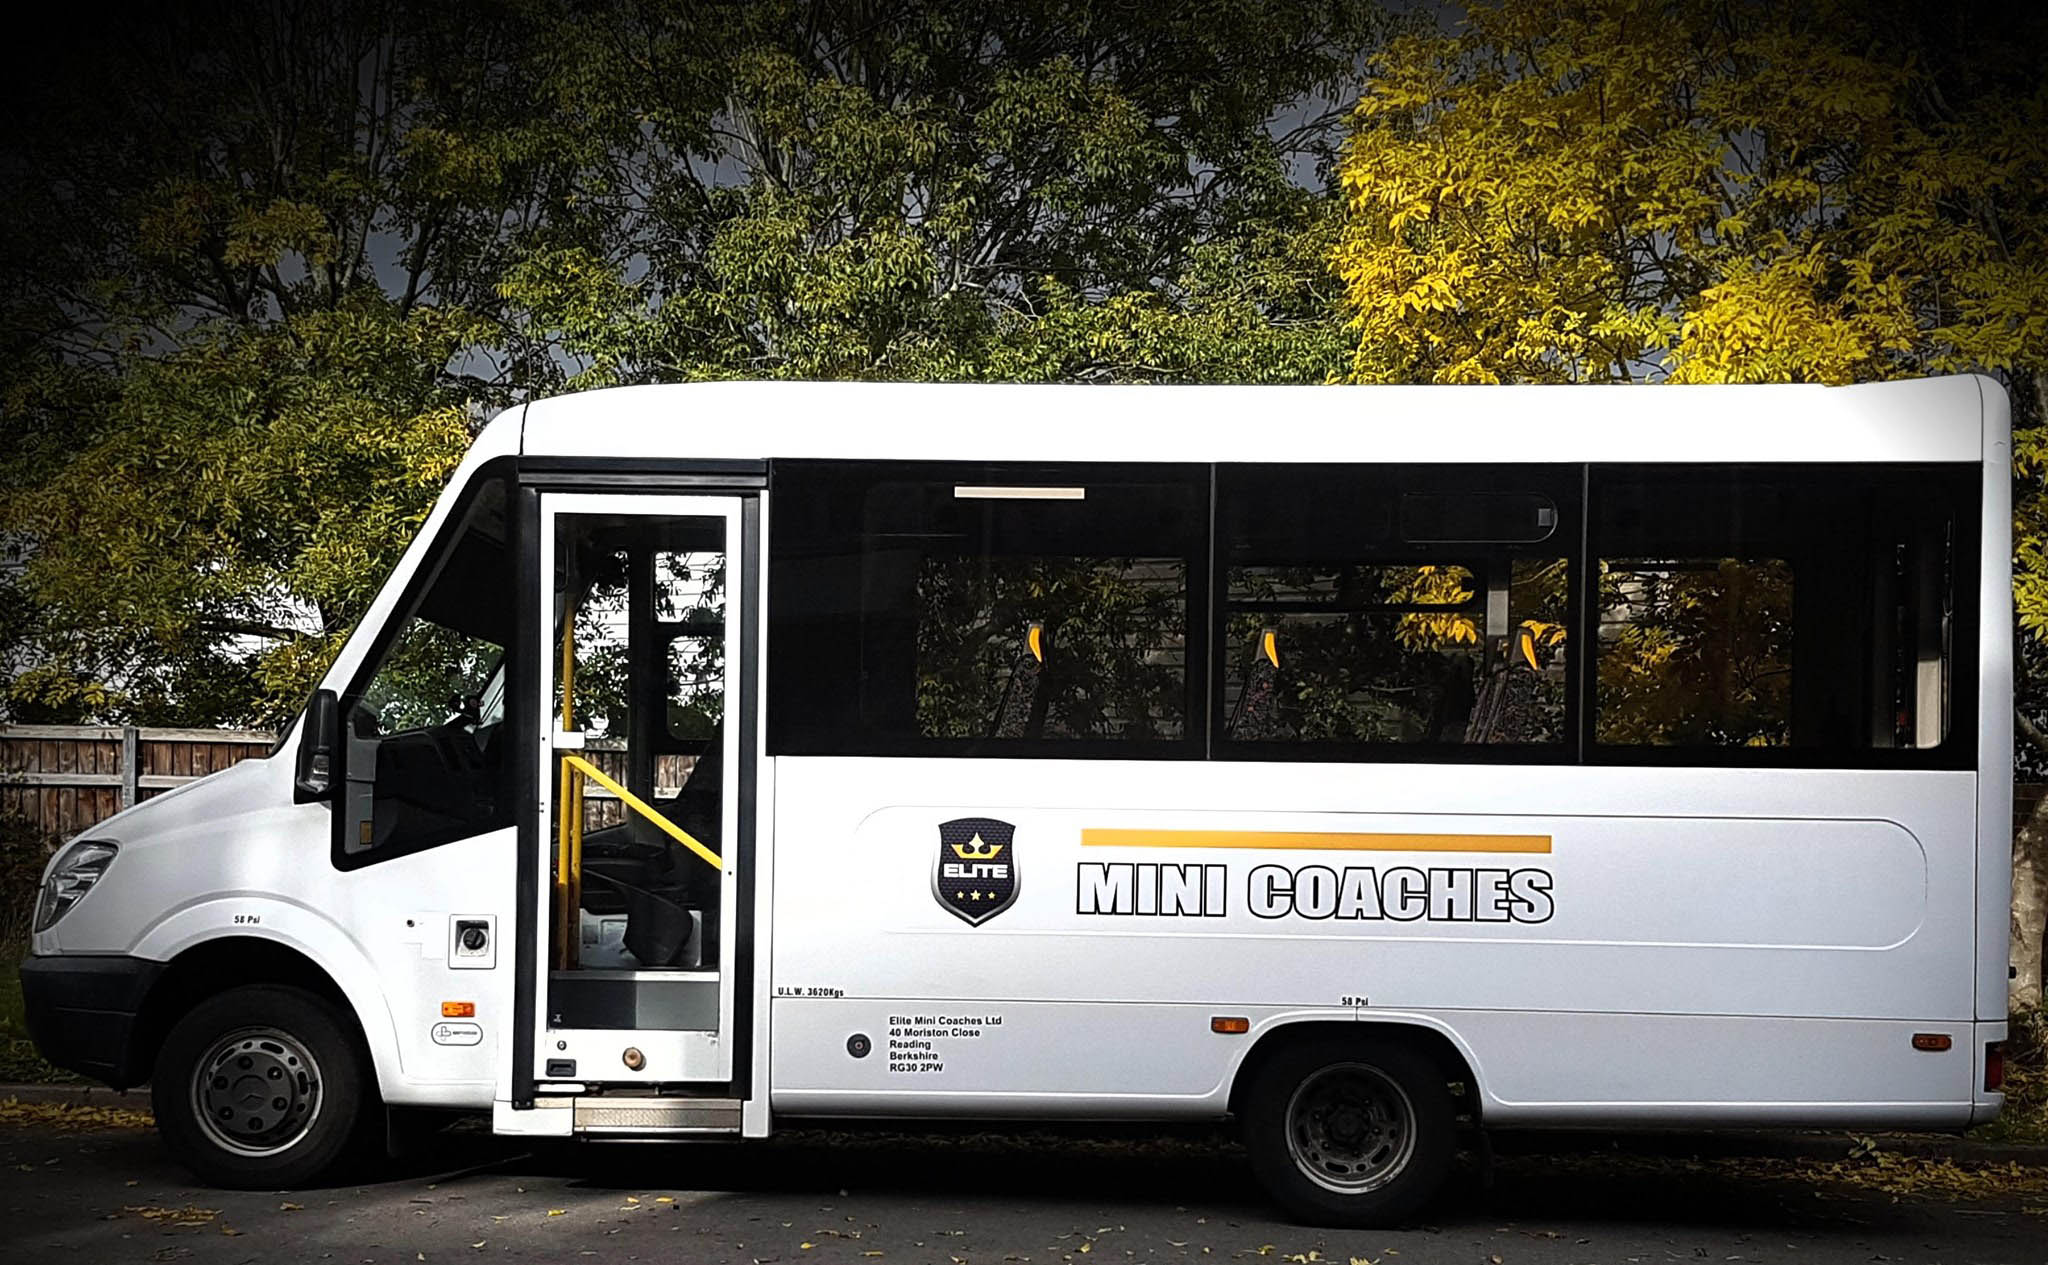 Coach Hire In Reading, Berkshire